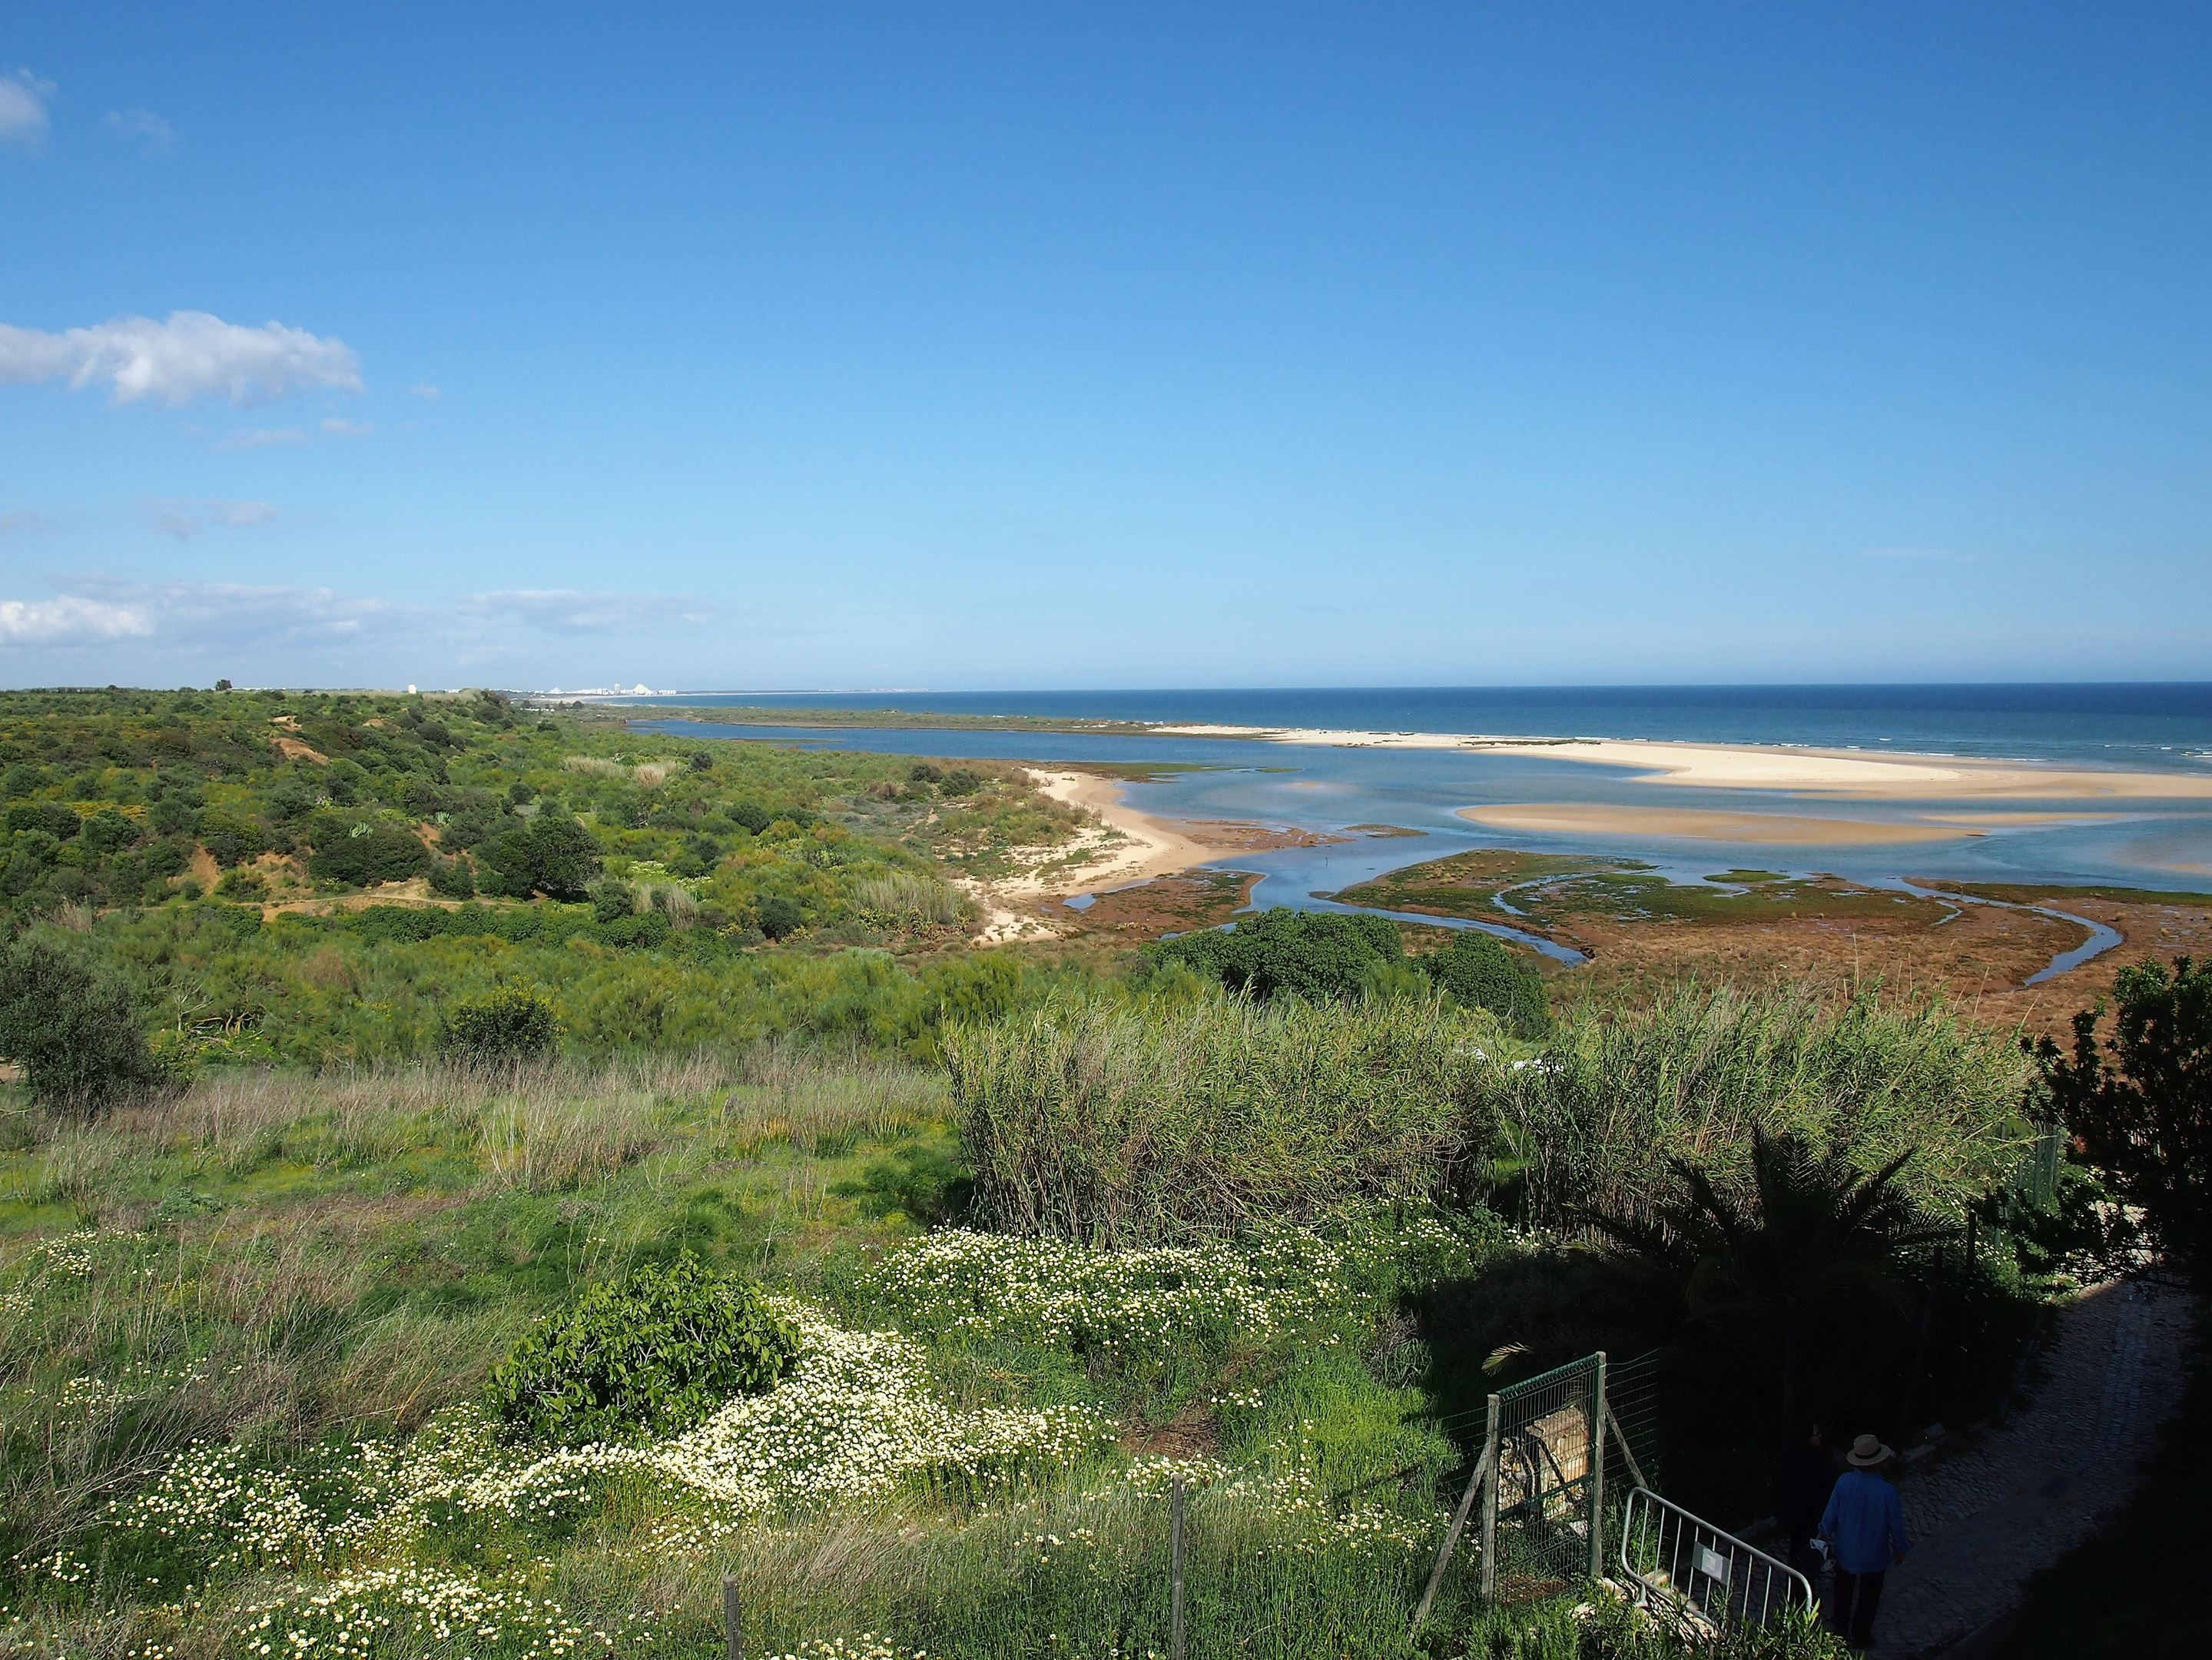 Looking east towards Monte Gordo from Cacela Velha, Algarve